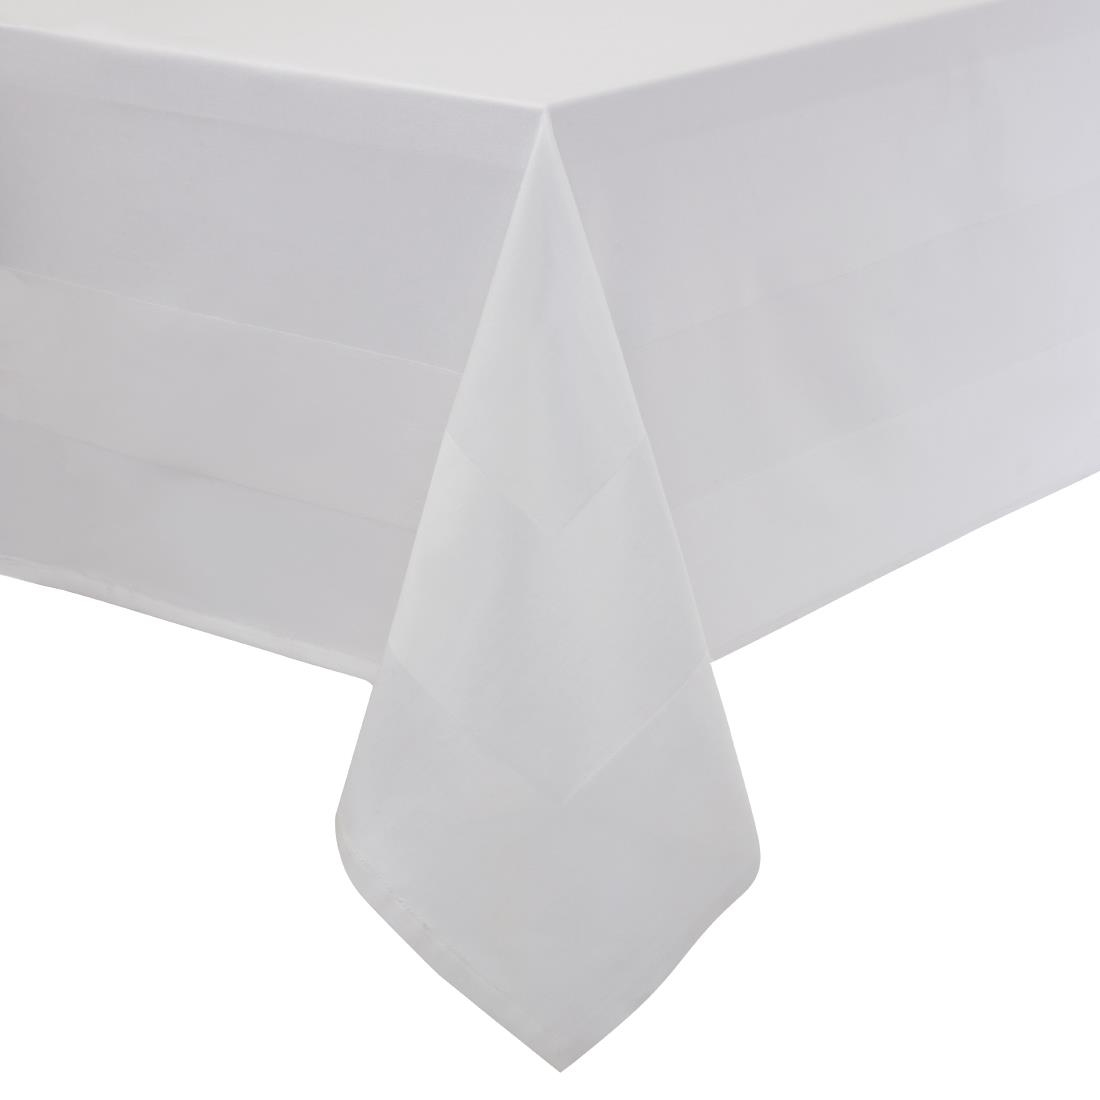 Image of Mitre Luxury Satin Band Tablecloth 1780 x 1780mm